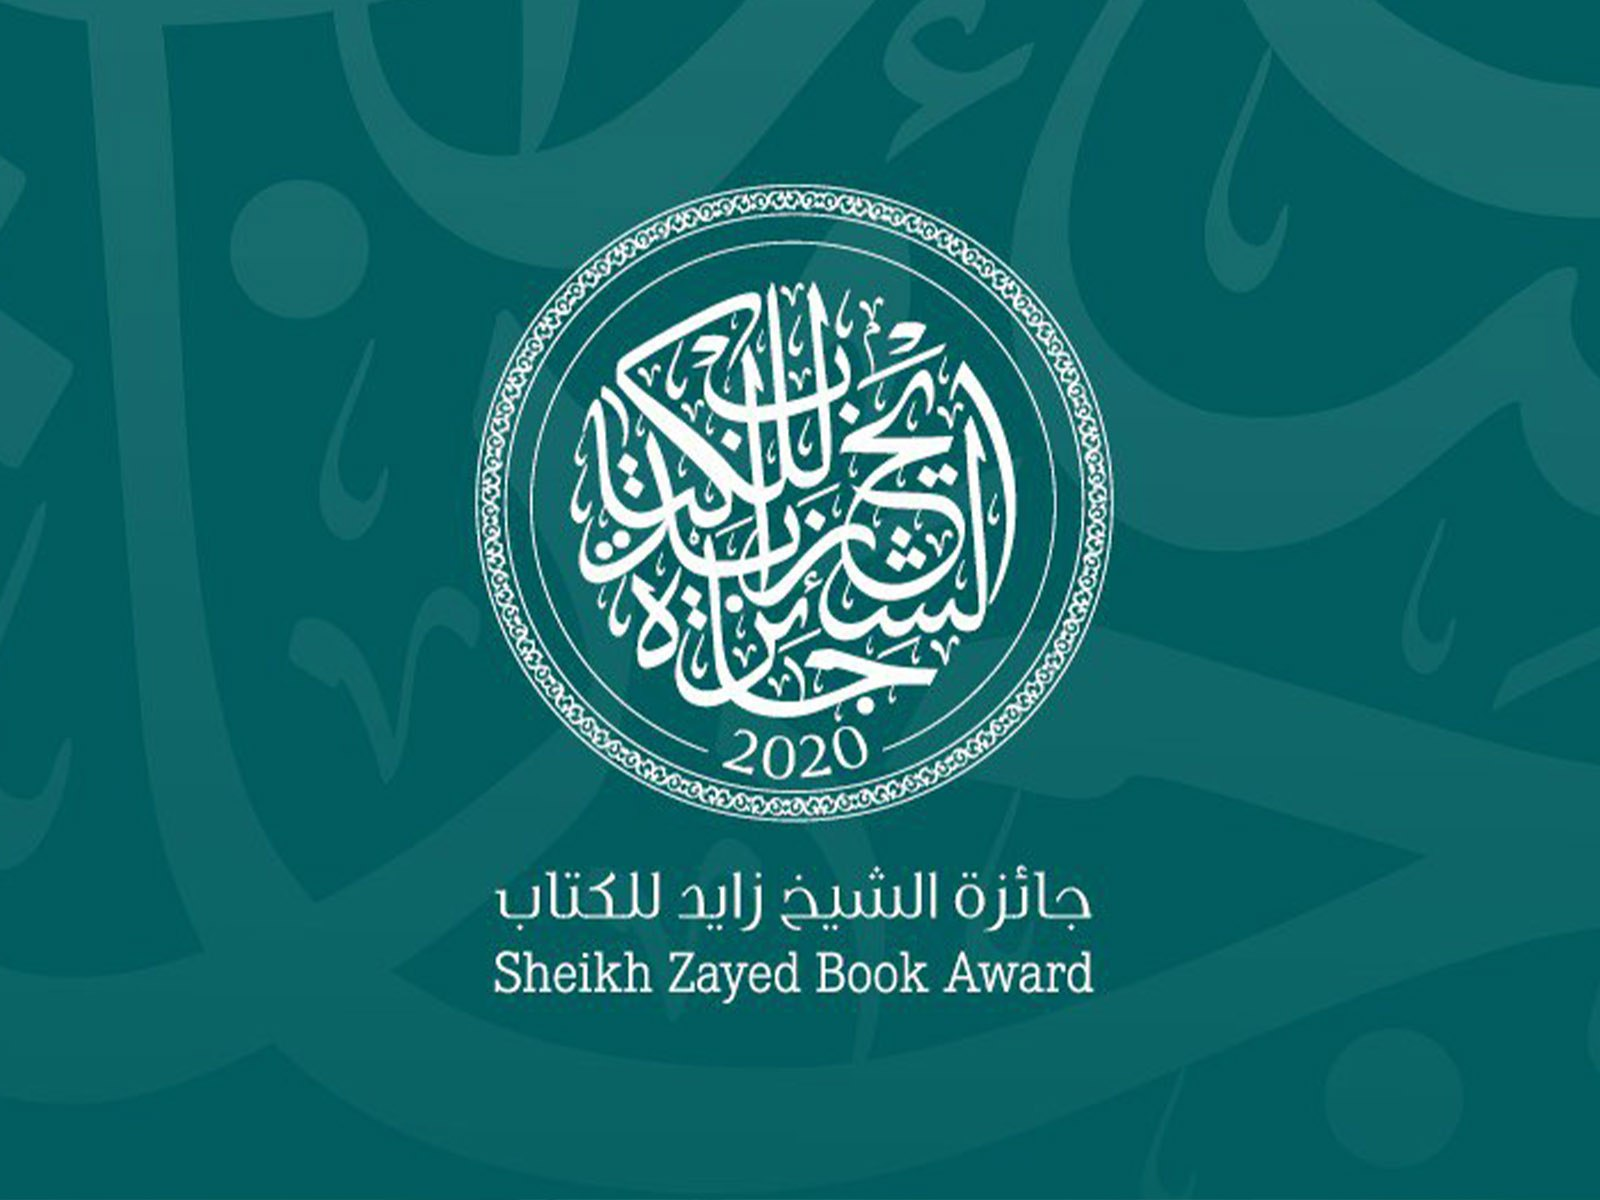 Sheikh Zayed Book Award adds five new languages to its website